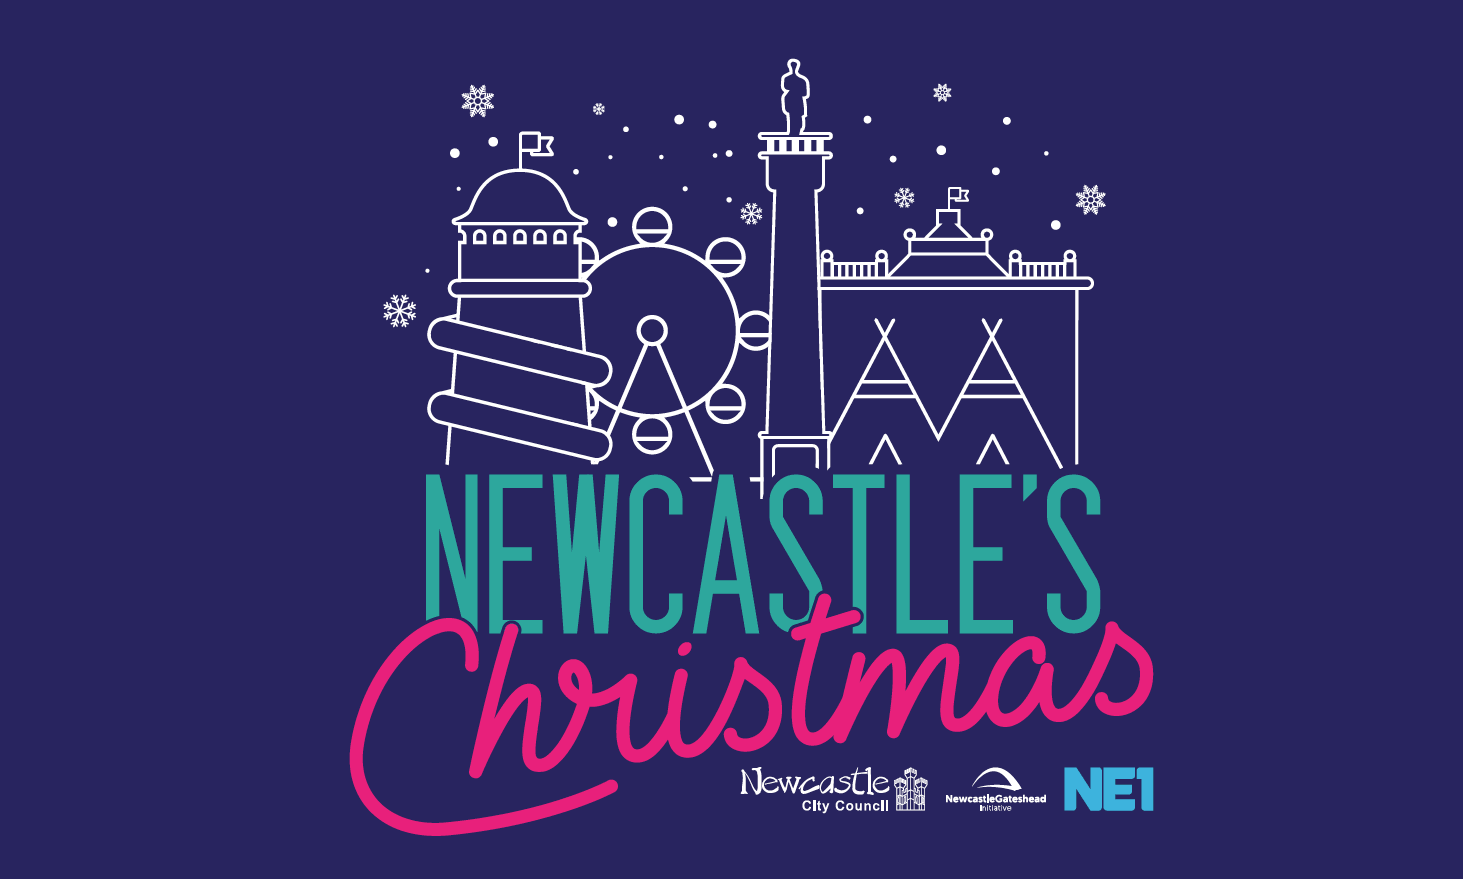 Newcastle Community Christmas